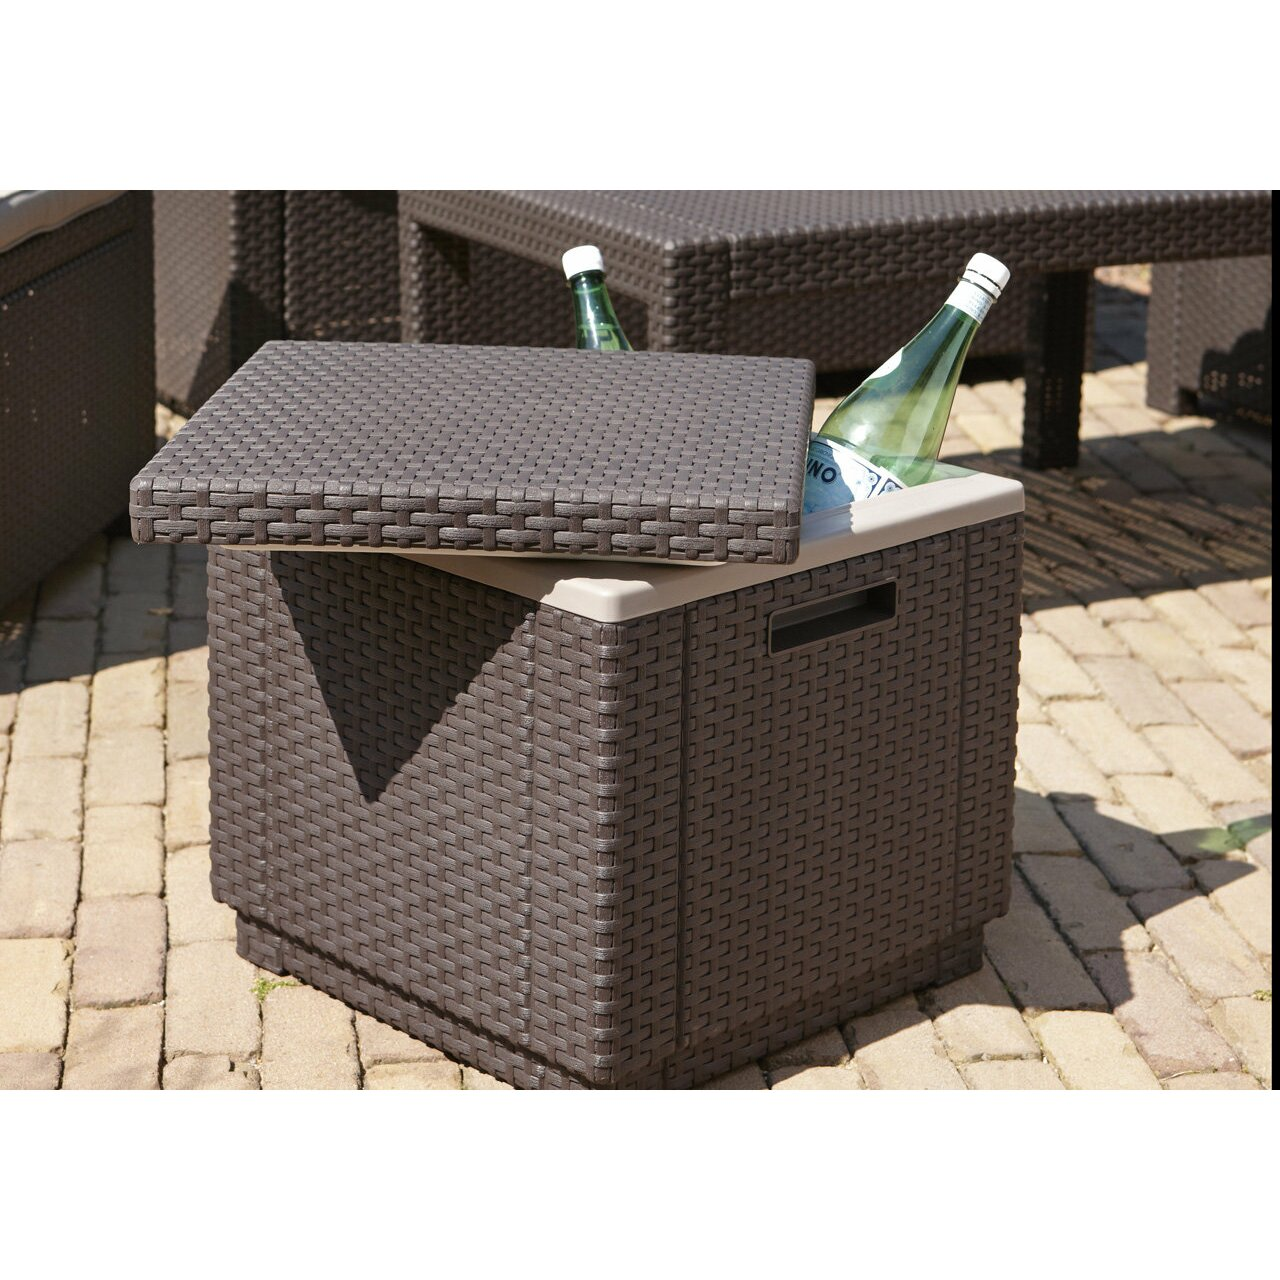 SunTime Outdoor Living Ice Cube Cooler & Reviews | Wayfair on Suntime Outdoor Living id=48826